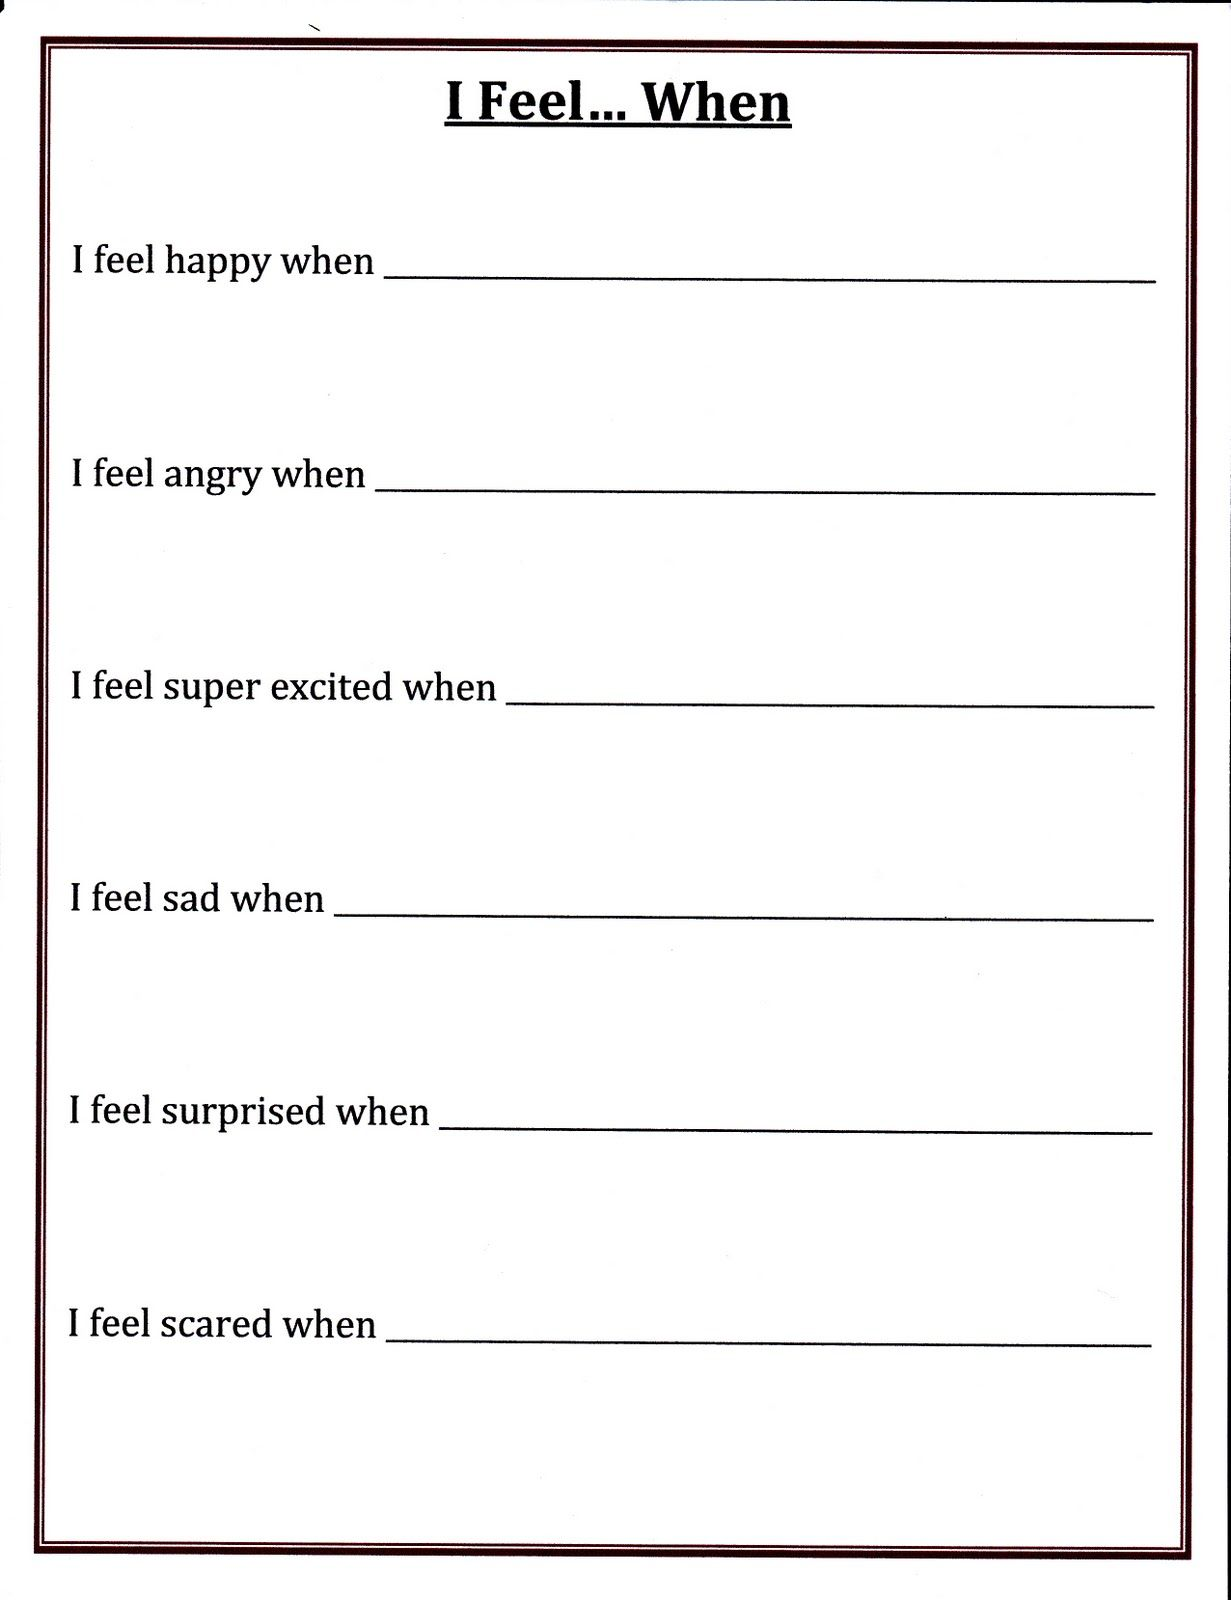 Free Worksheet Grief Worksheet printables grief worksheet gozoneguide thousands of printable davezan worksheets for children davezan